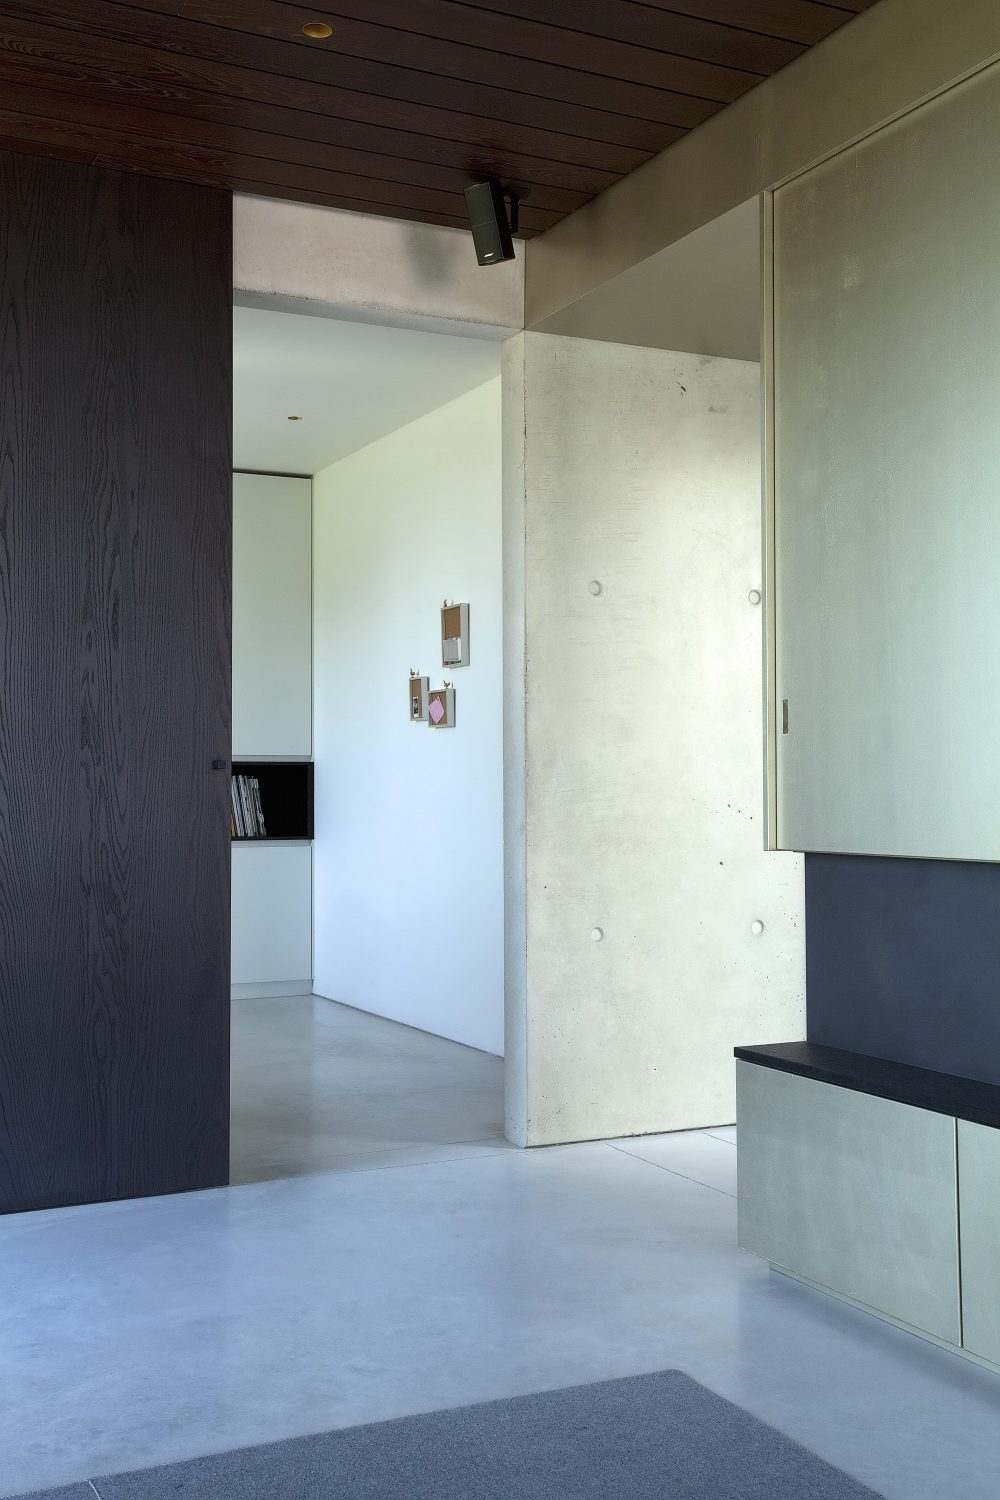 Concrete House Organized Around a Central Courtyard